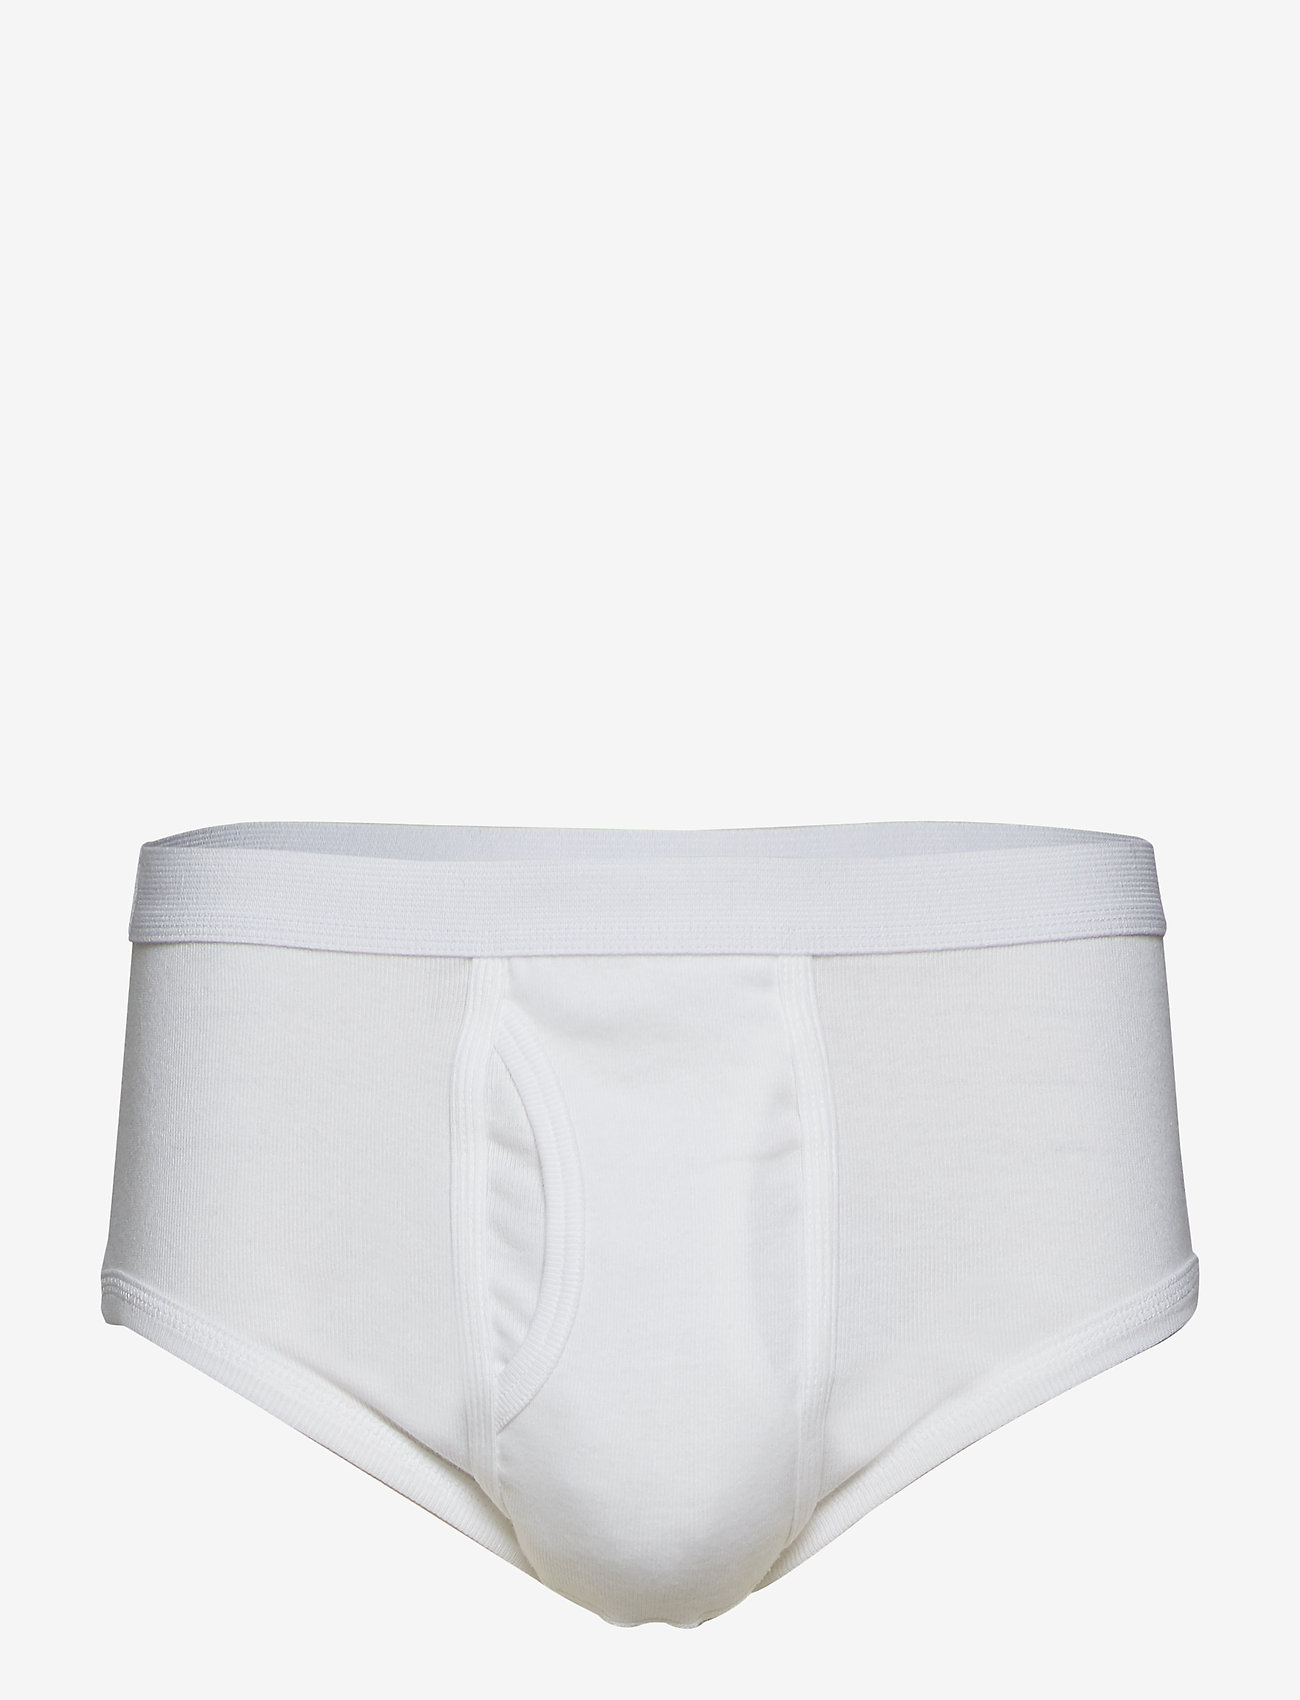 JBS - Original briefs - alushousut - white - 0